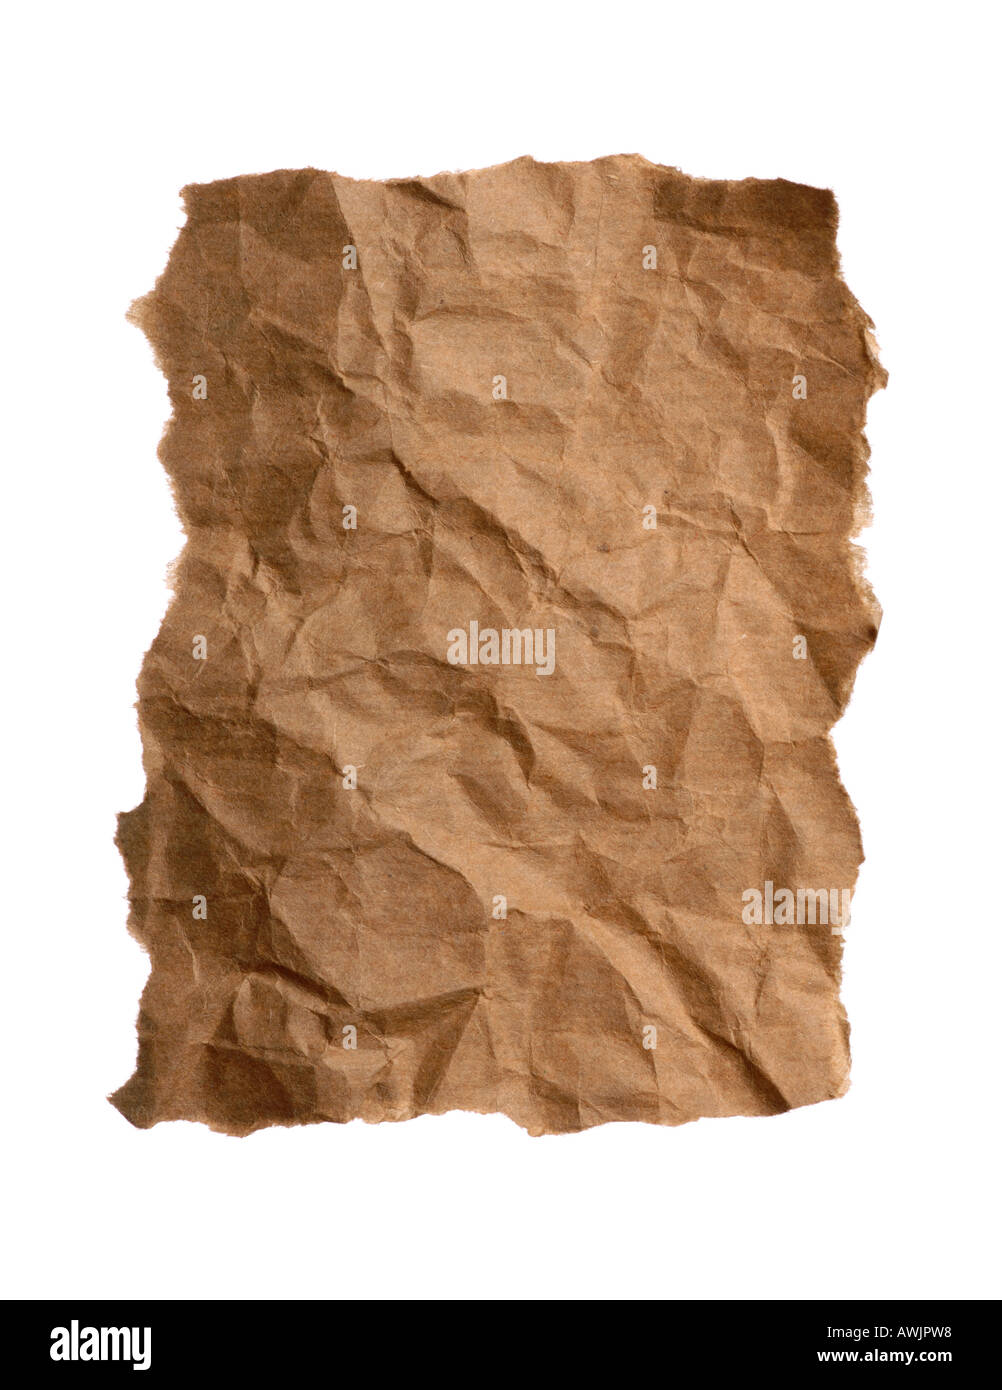 A piece of crumpled and torn brown paper - Stock Image